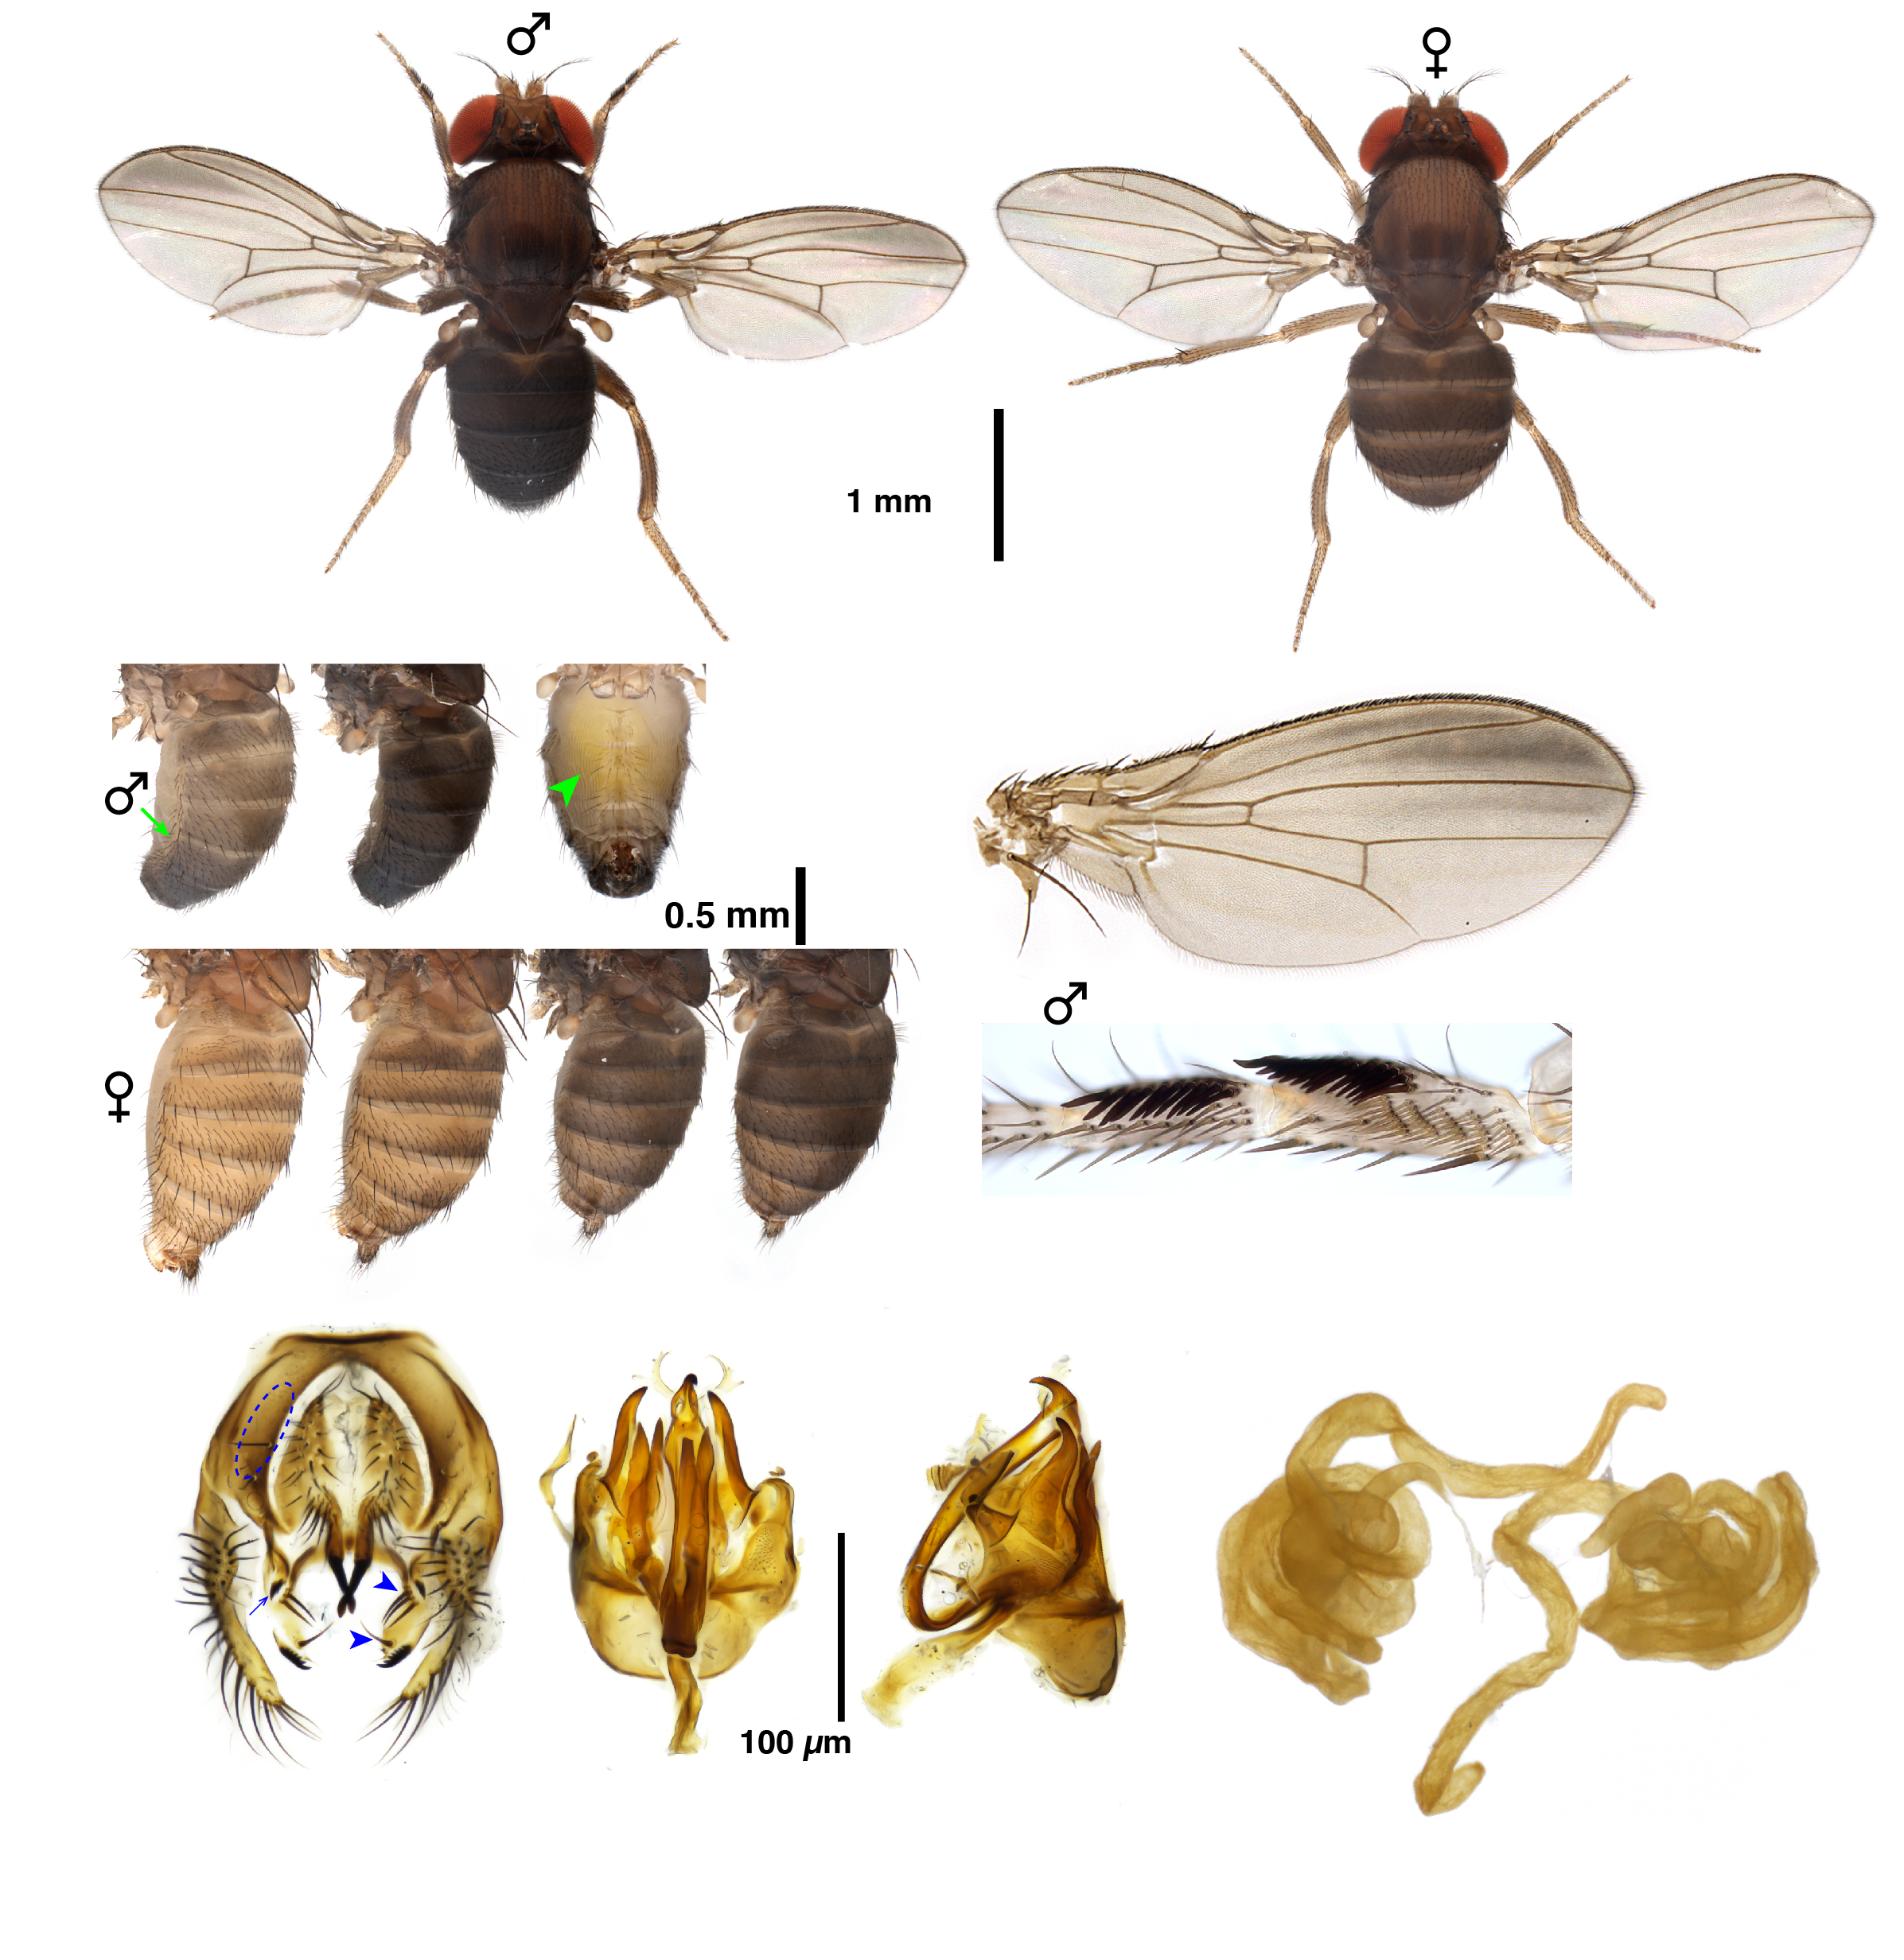 Drosophila carrolli